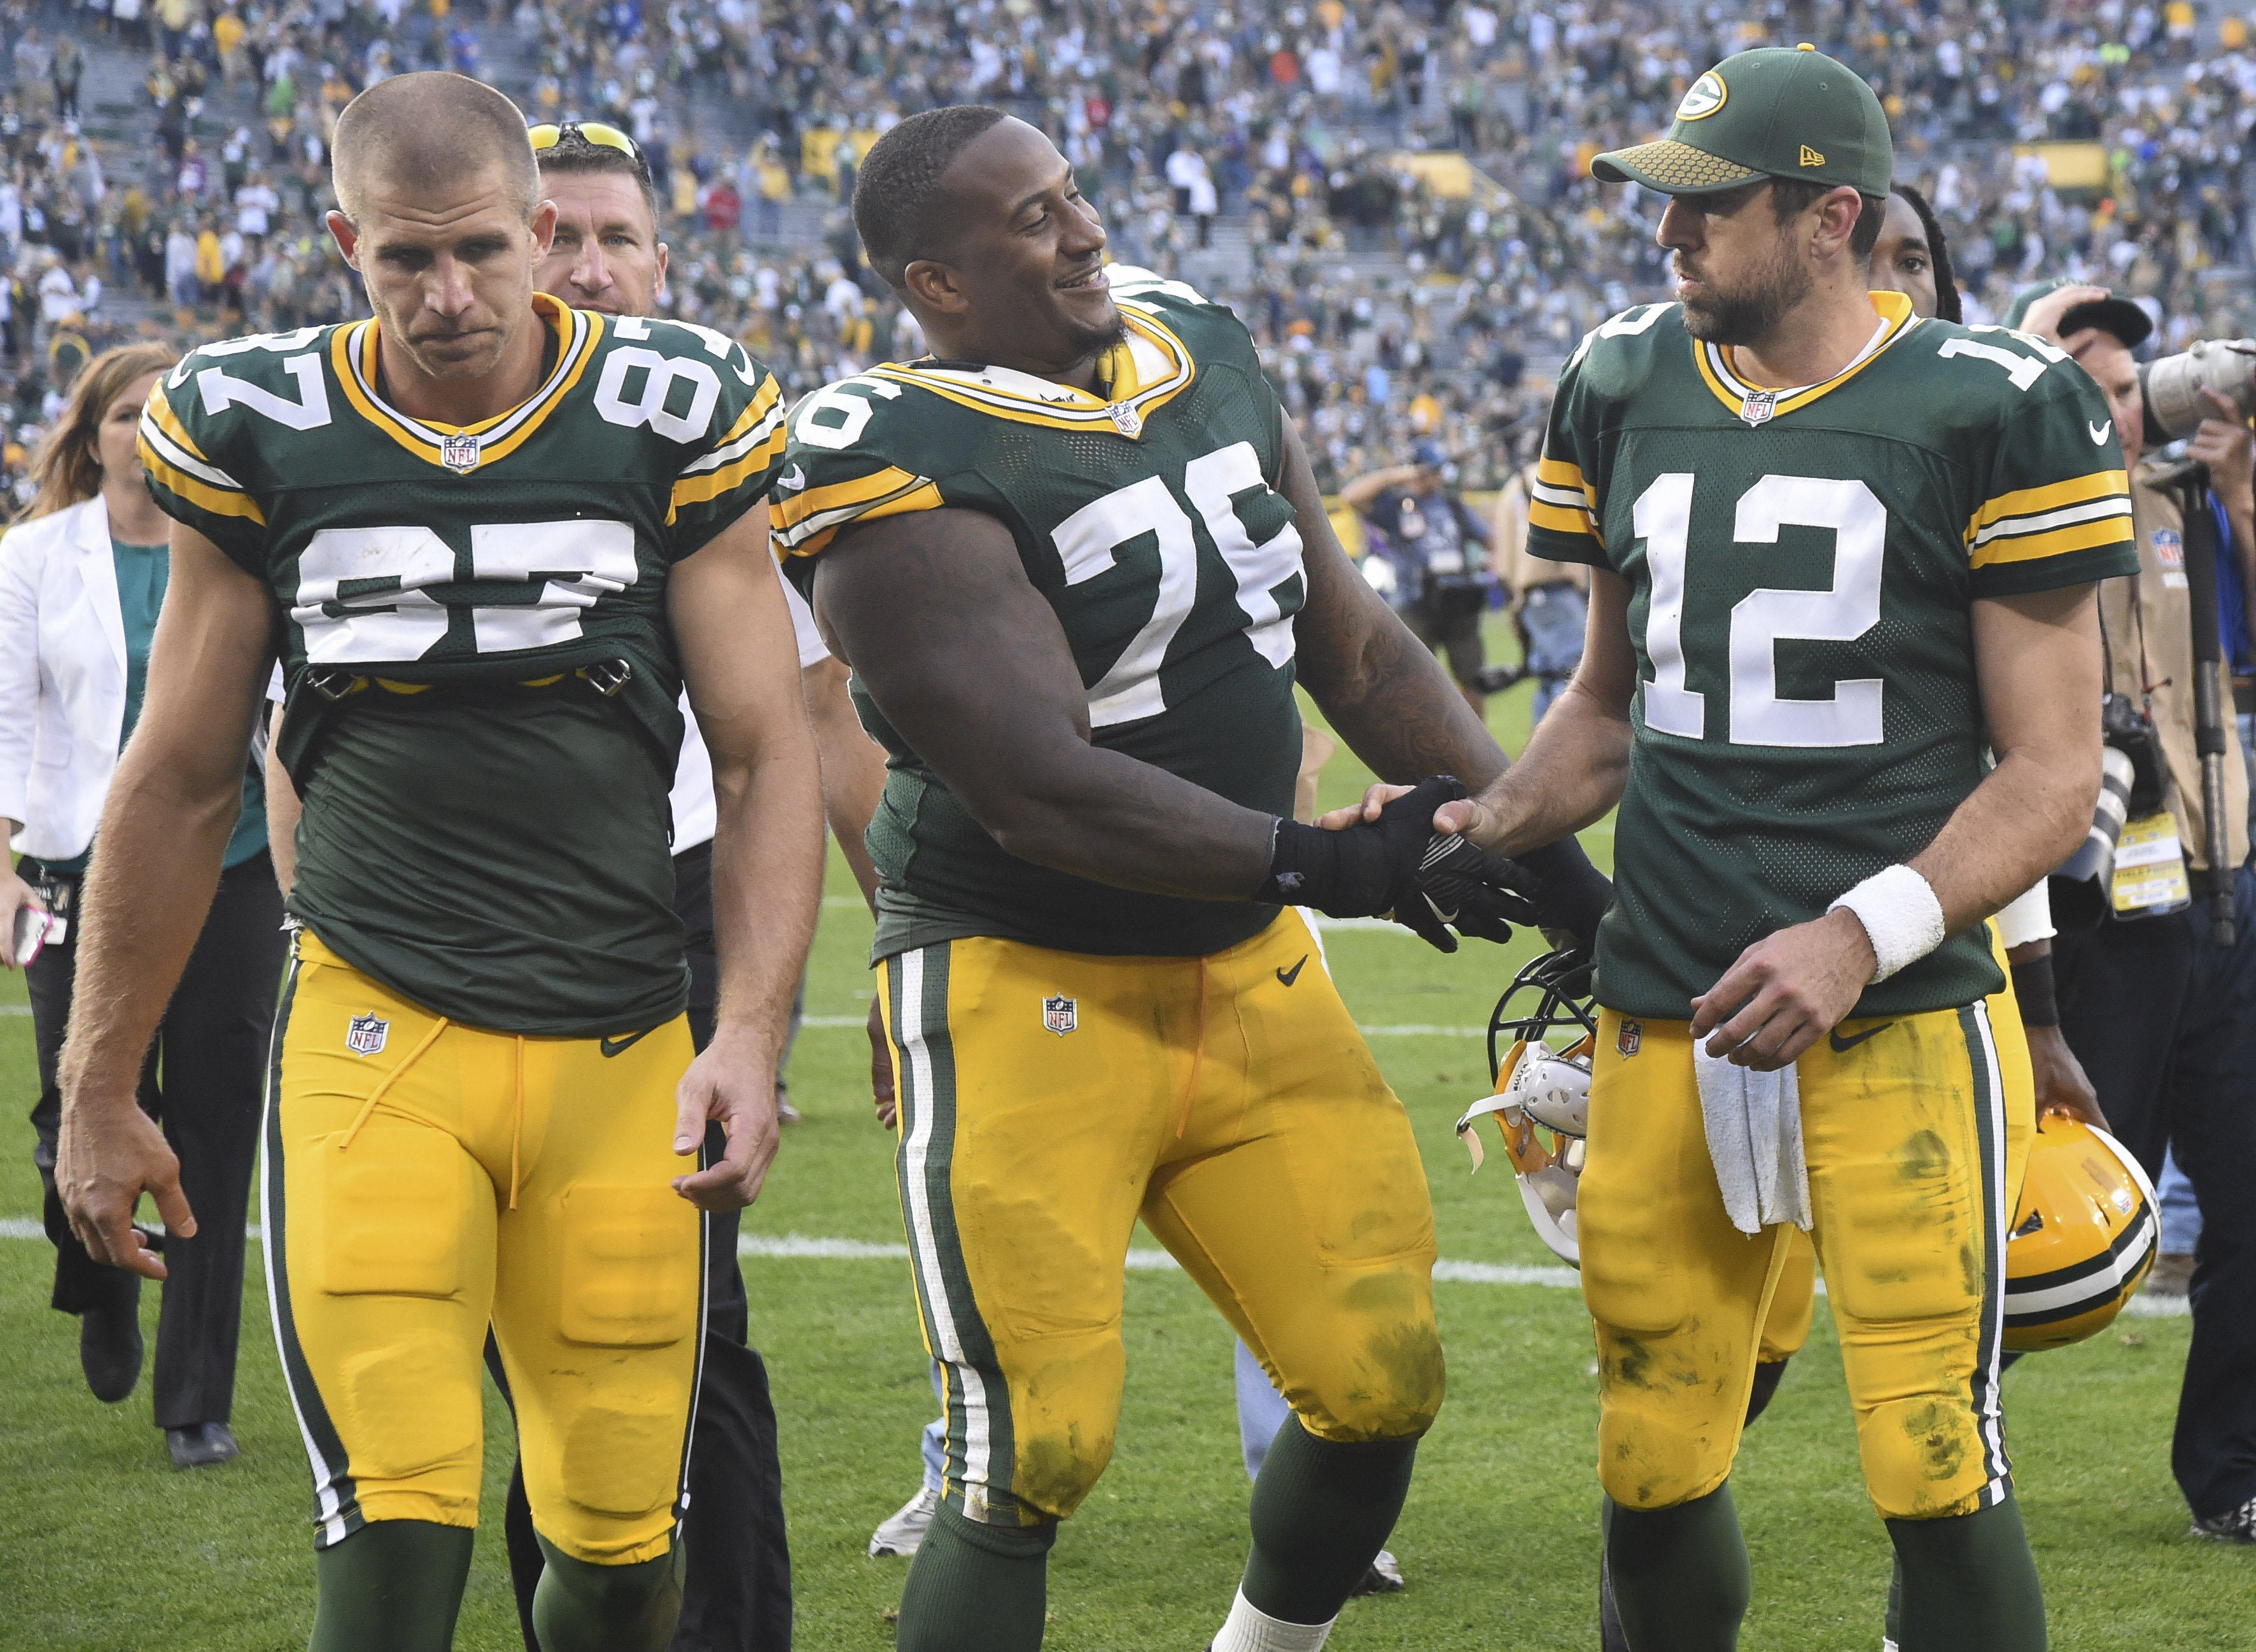 A Look at the Packers All-Decade Team for 2010s